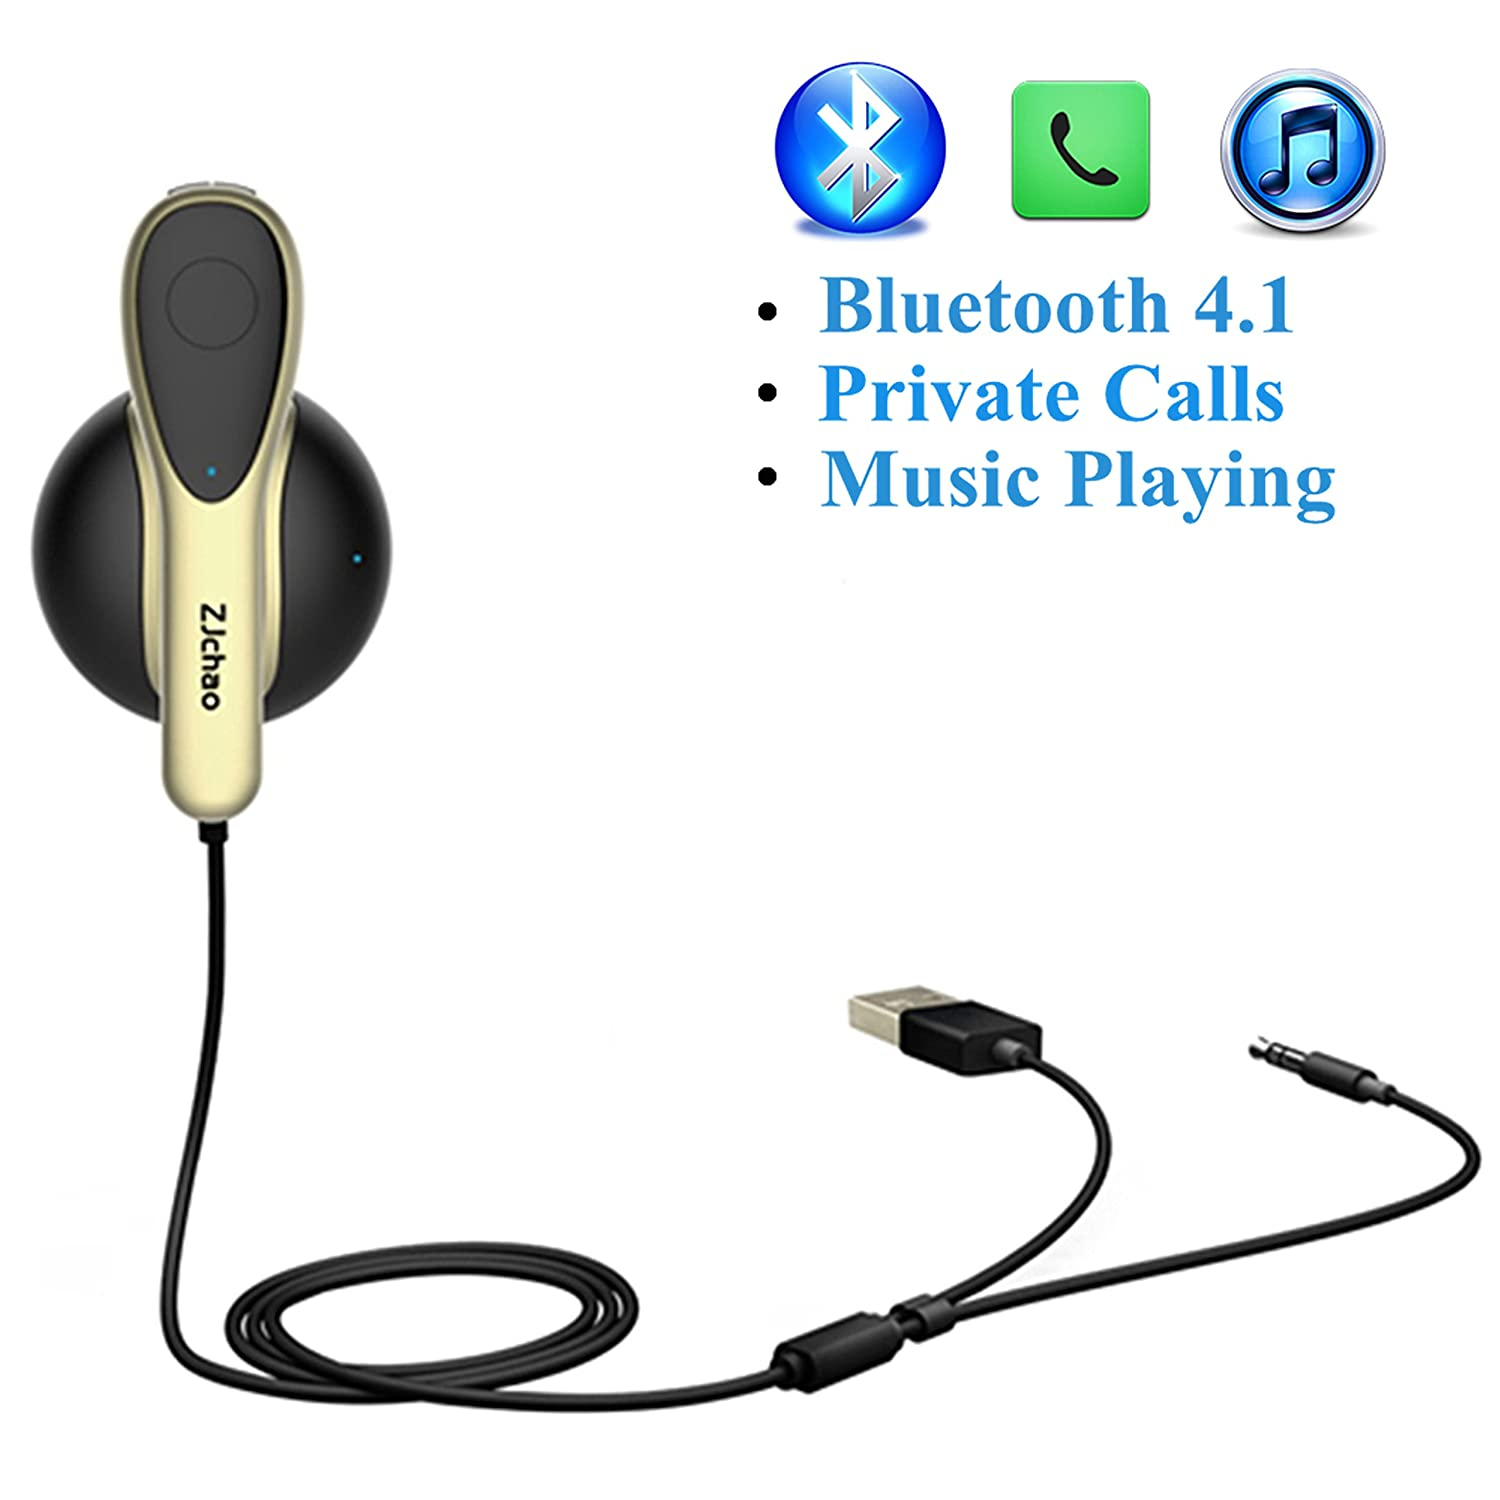 Wireless Bluetooth Headset for Car Hands Free Driving Coming with Magnetic Charging Dock 3.5mm Aux Input Jack and USB Charging Cord